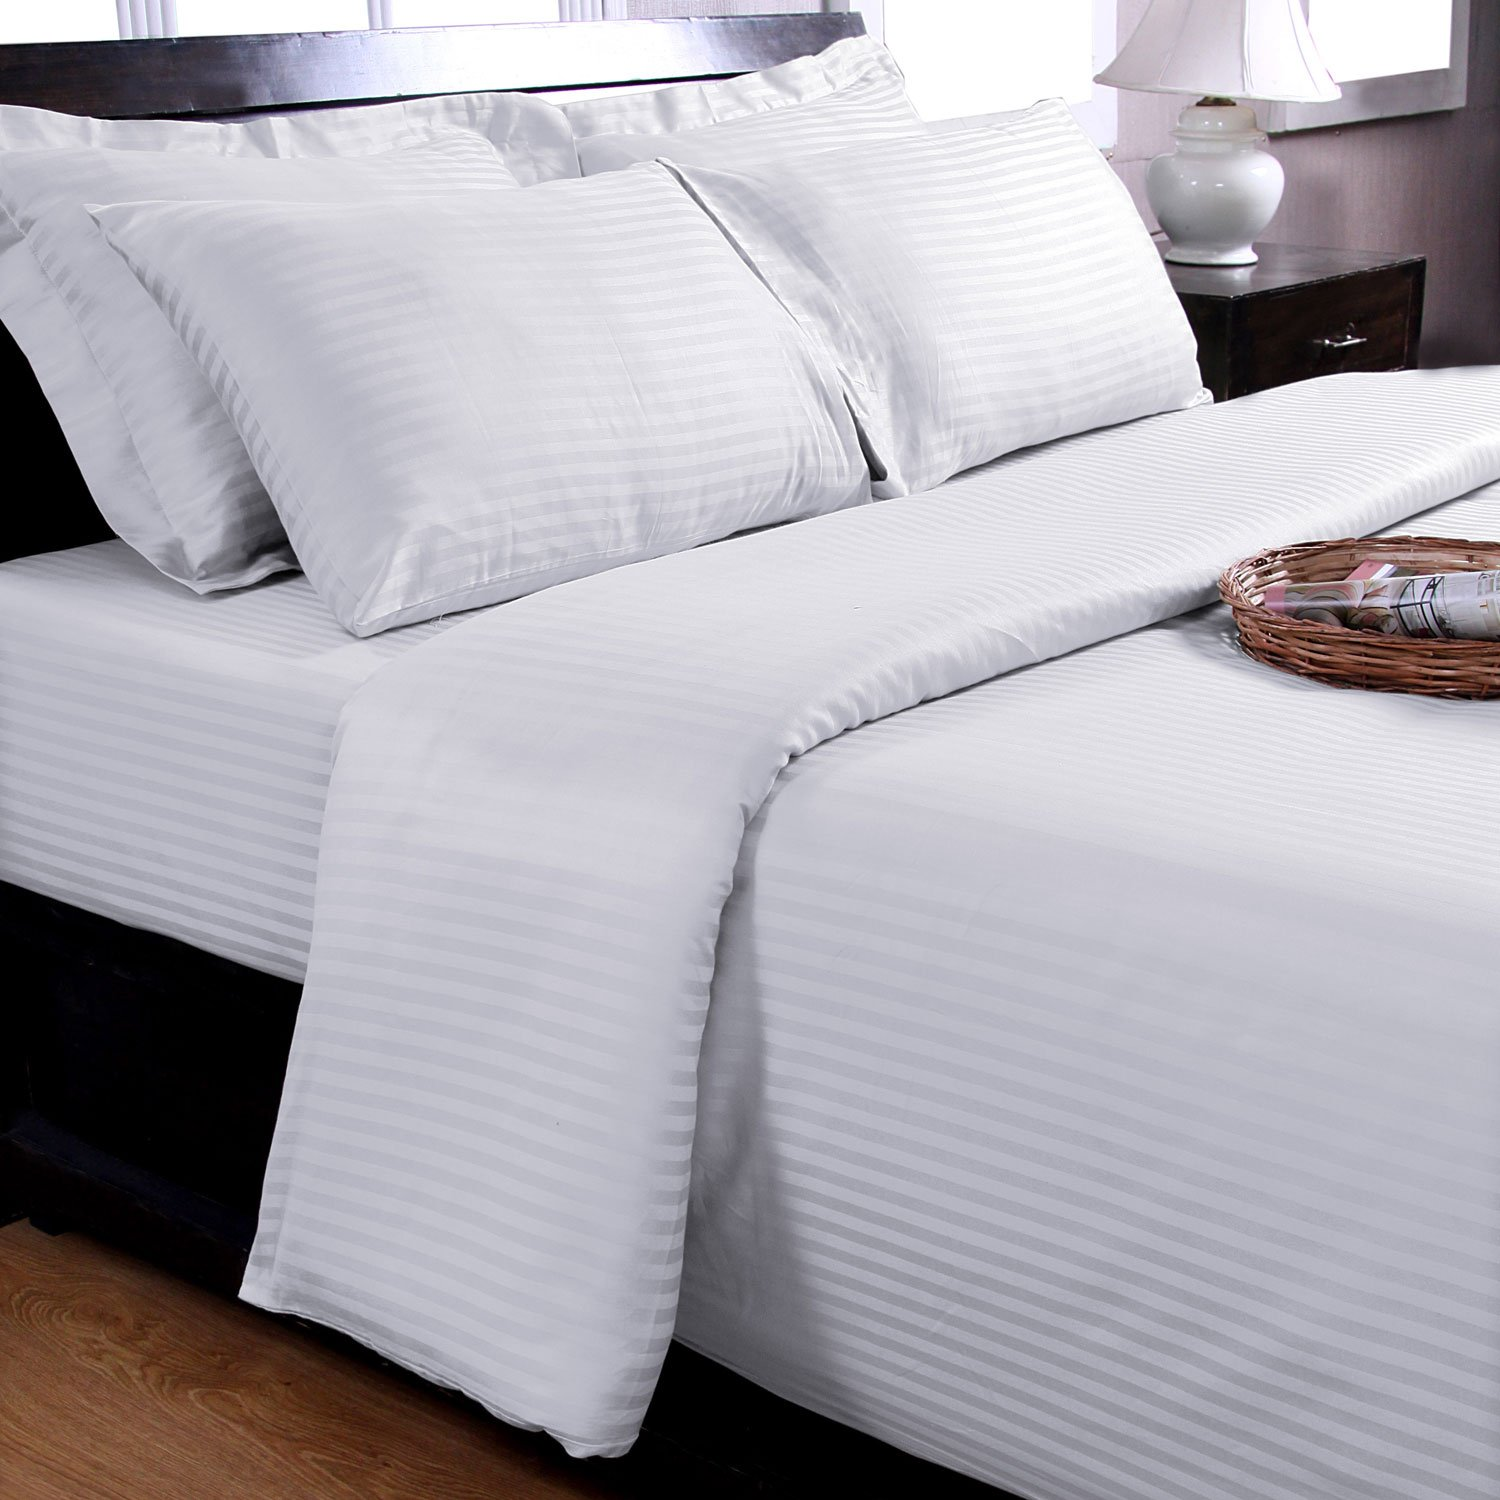 Homescapes 100% Egyptian Cotton Housewife Pillowcase Black Satin Stripe 330 Thread Count Percale Anti Dust Mite Others